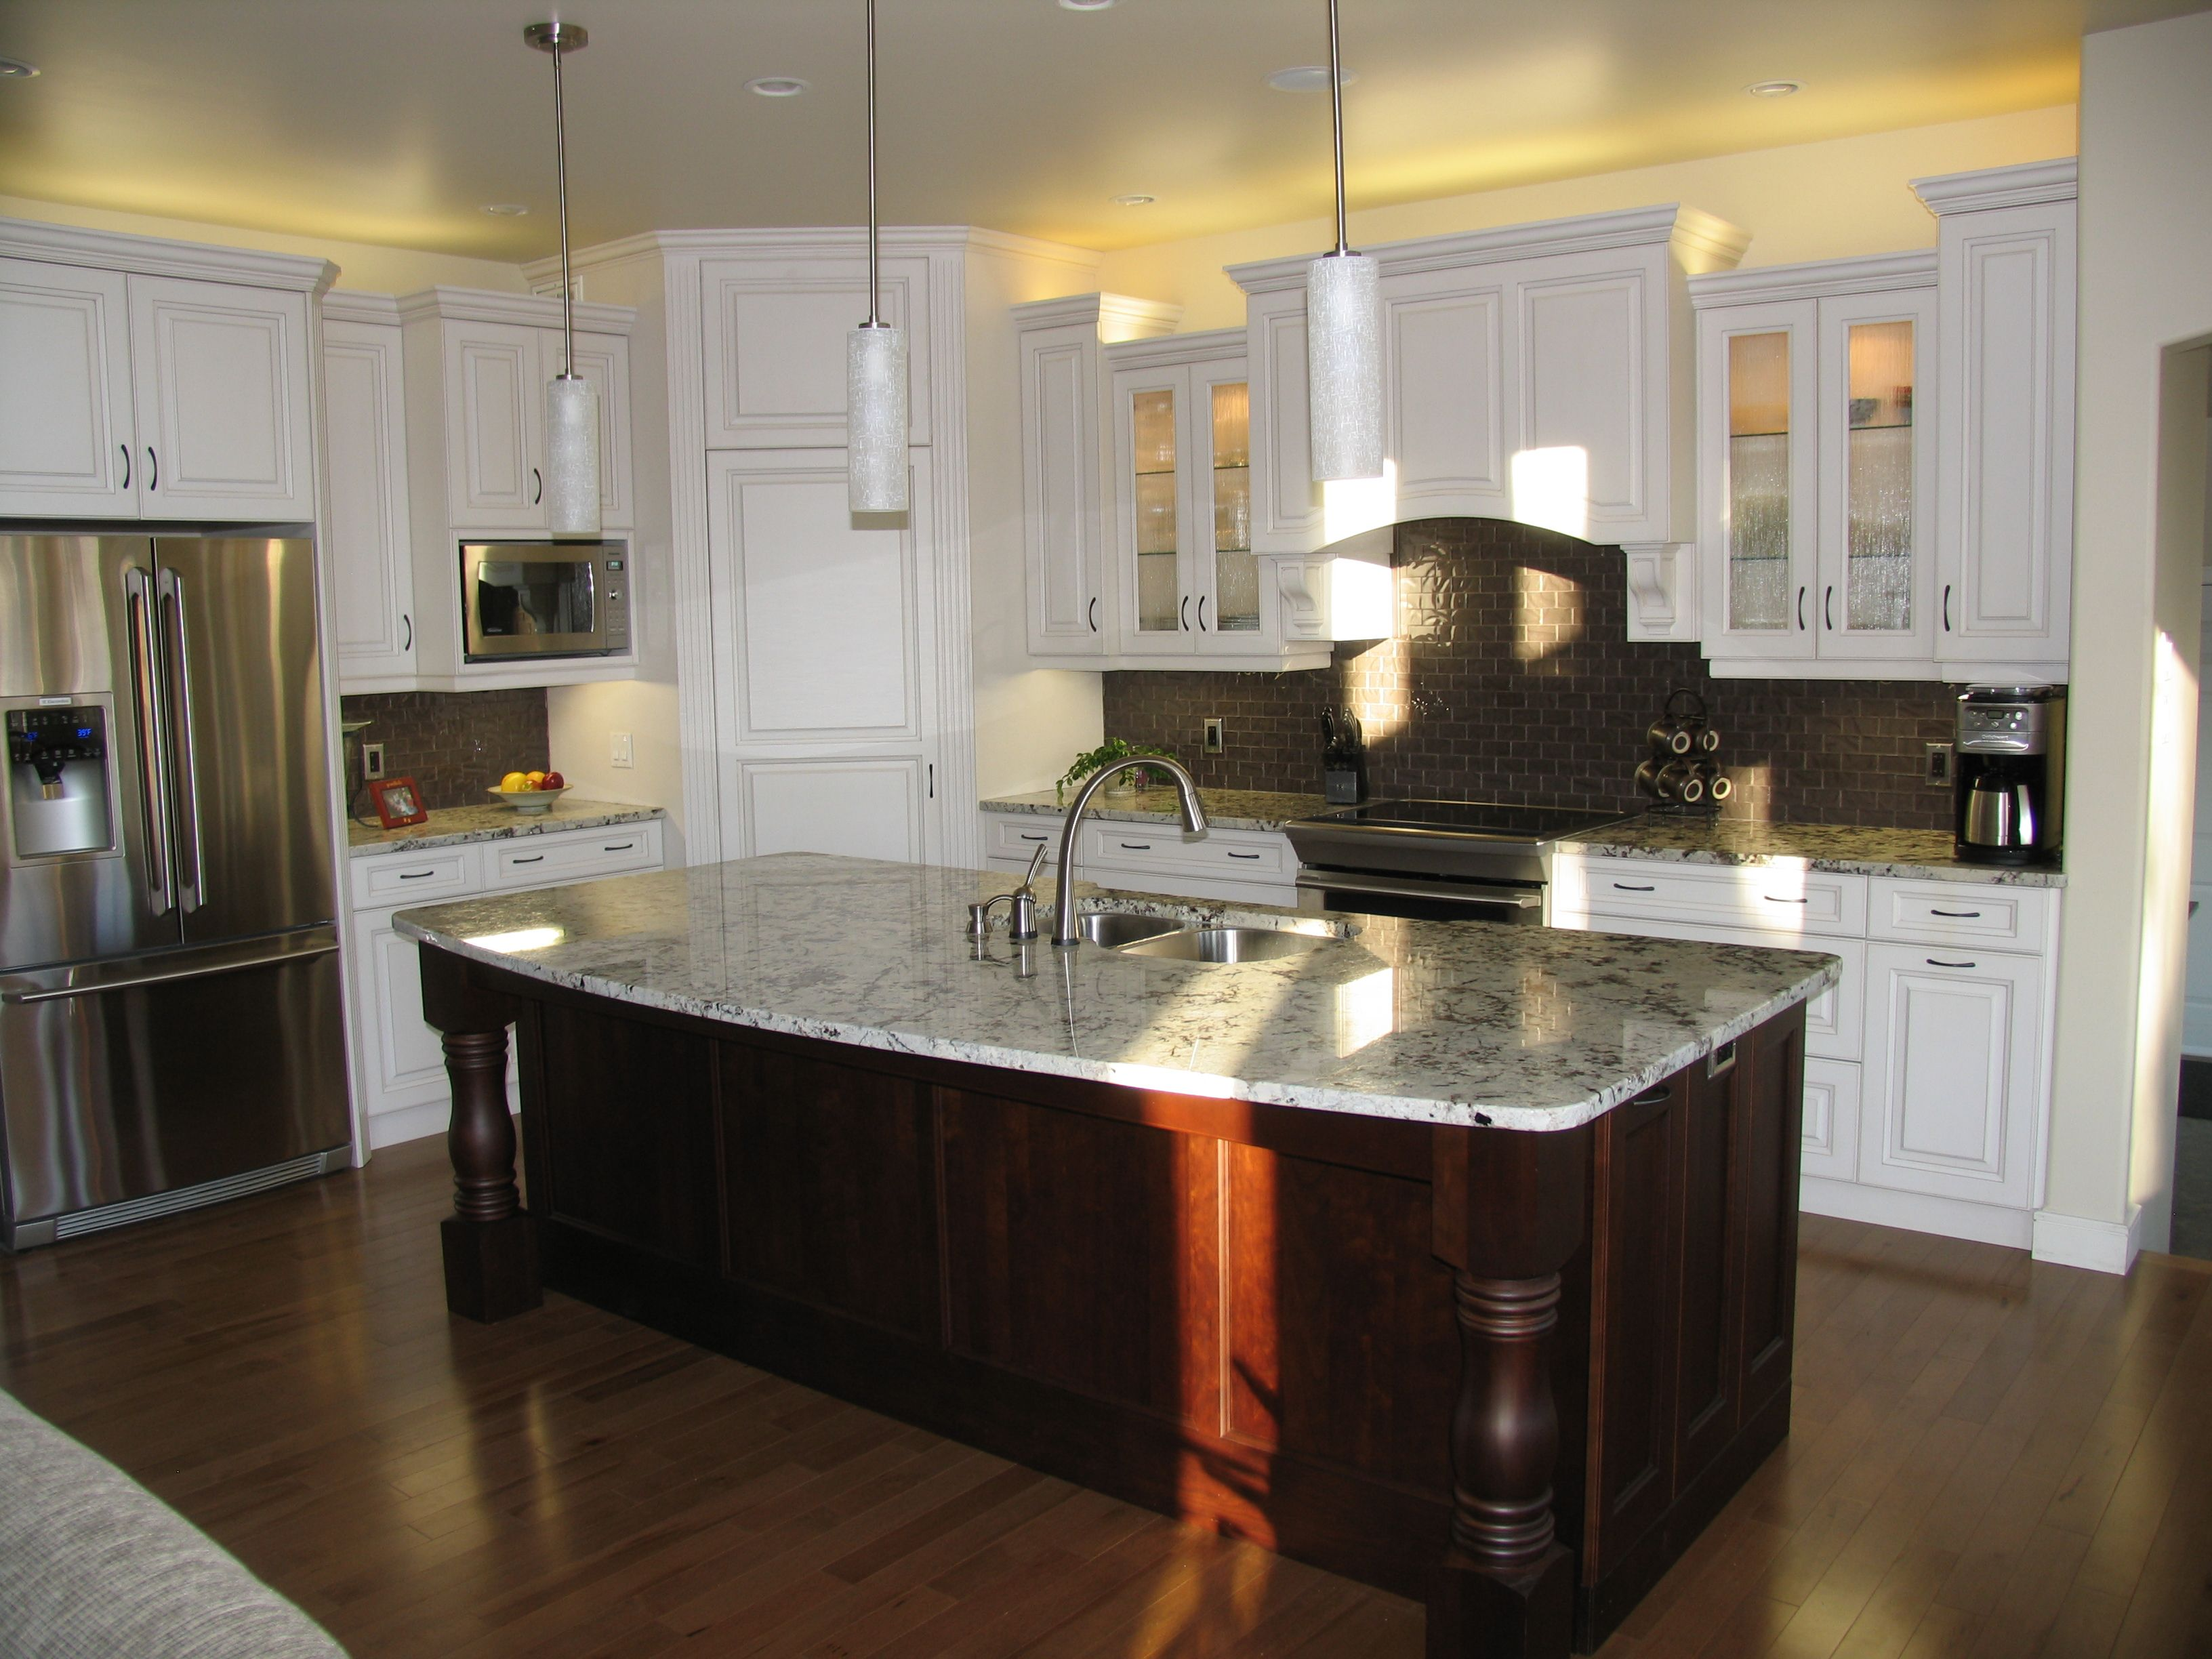 Granite Island Kitchen Kitchen Cabinets Maple Arctic White Island Cabinets Cherry